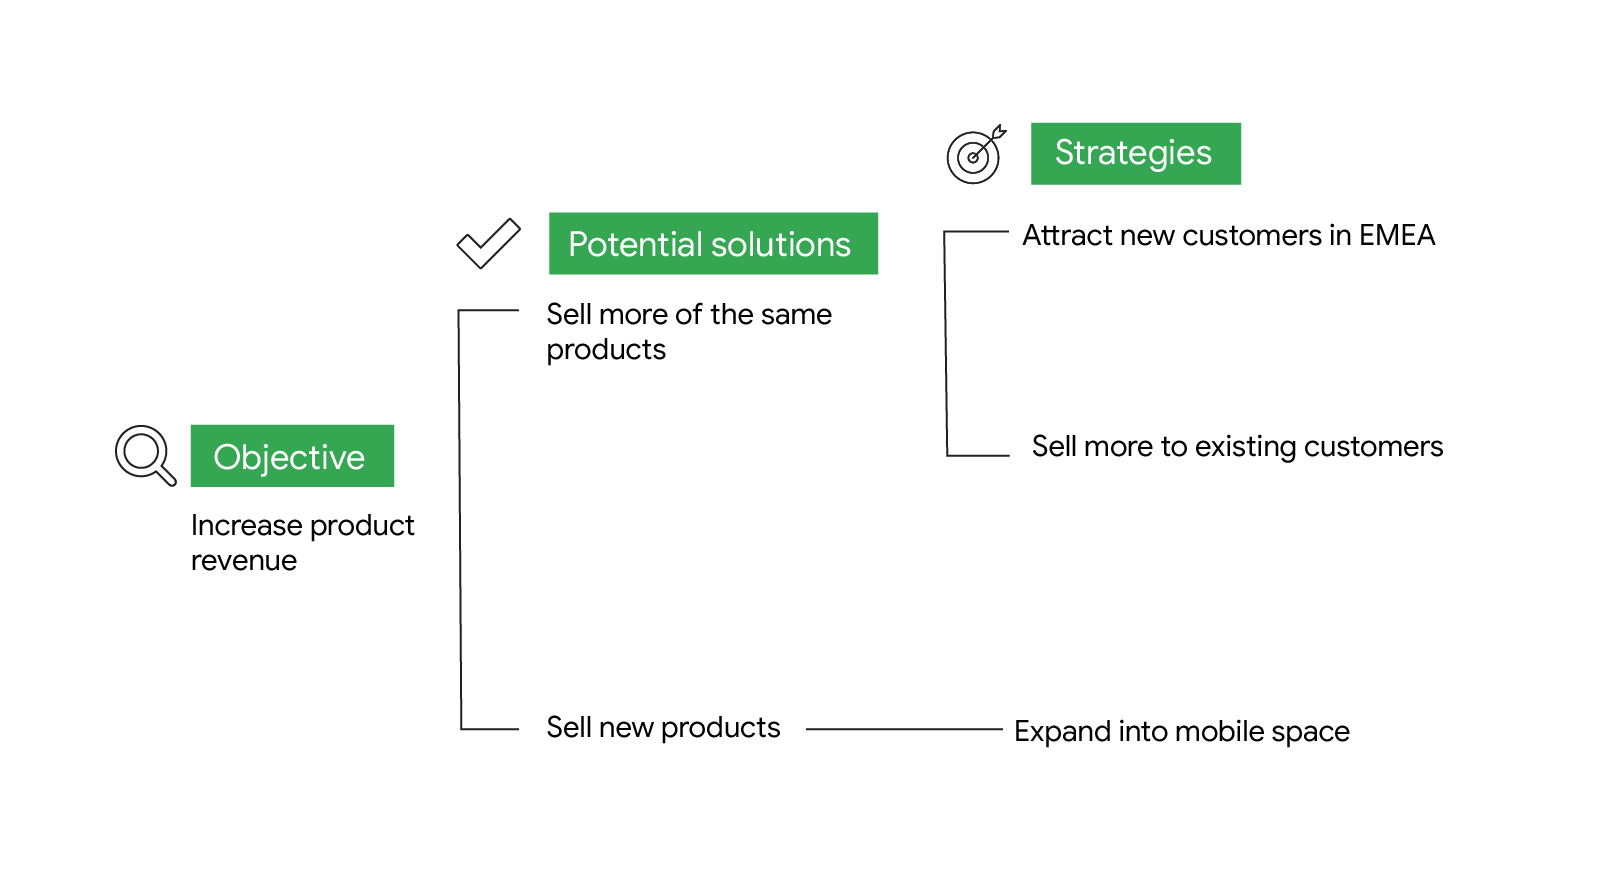 A solution tree with 1 objective: increase product revenue; 2 potential solutions: sell more of the same products and sell more new products; and 3 strategies: attract new customers in EMEA, sell more to existing customers, expand to mobile.